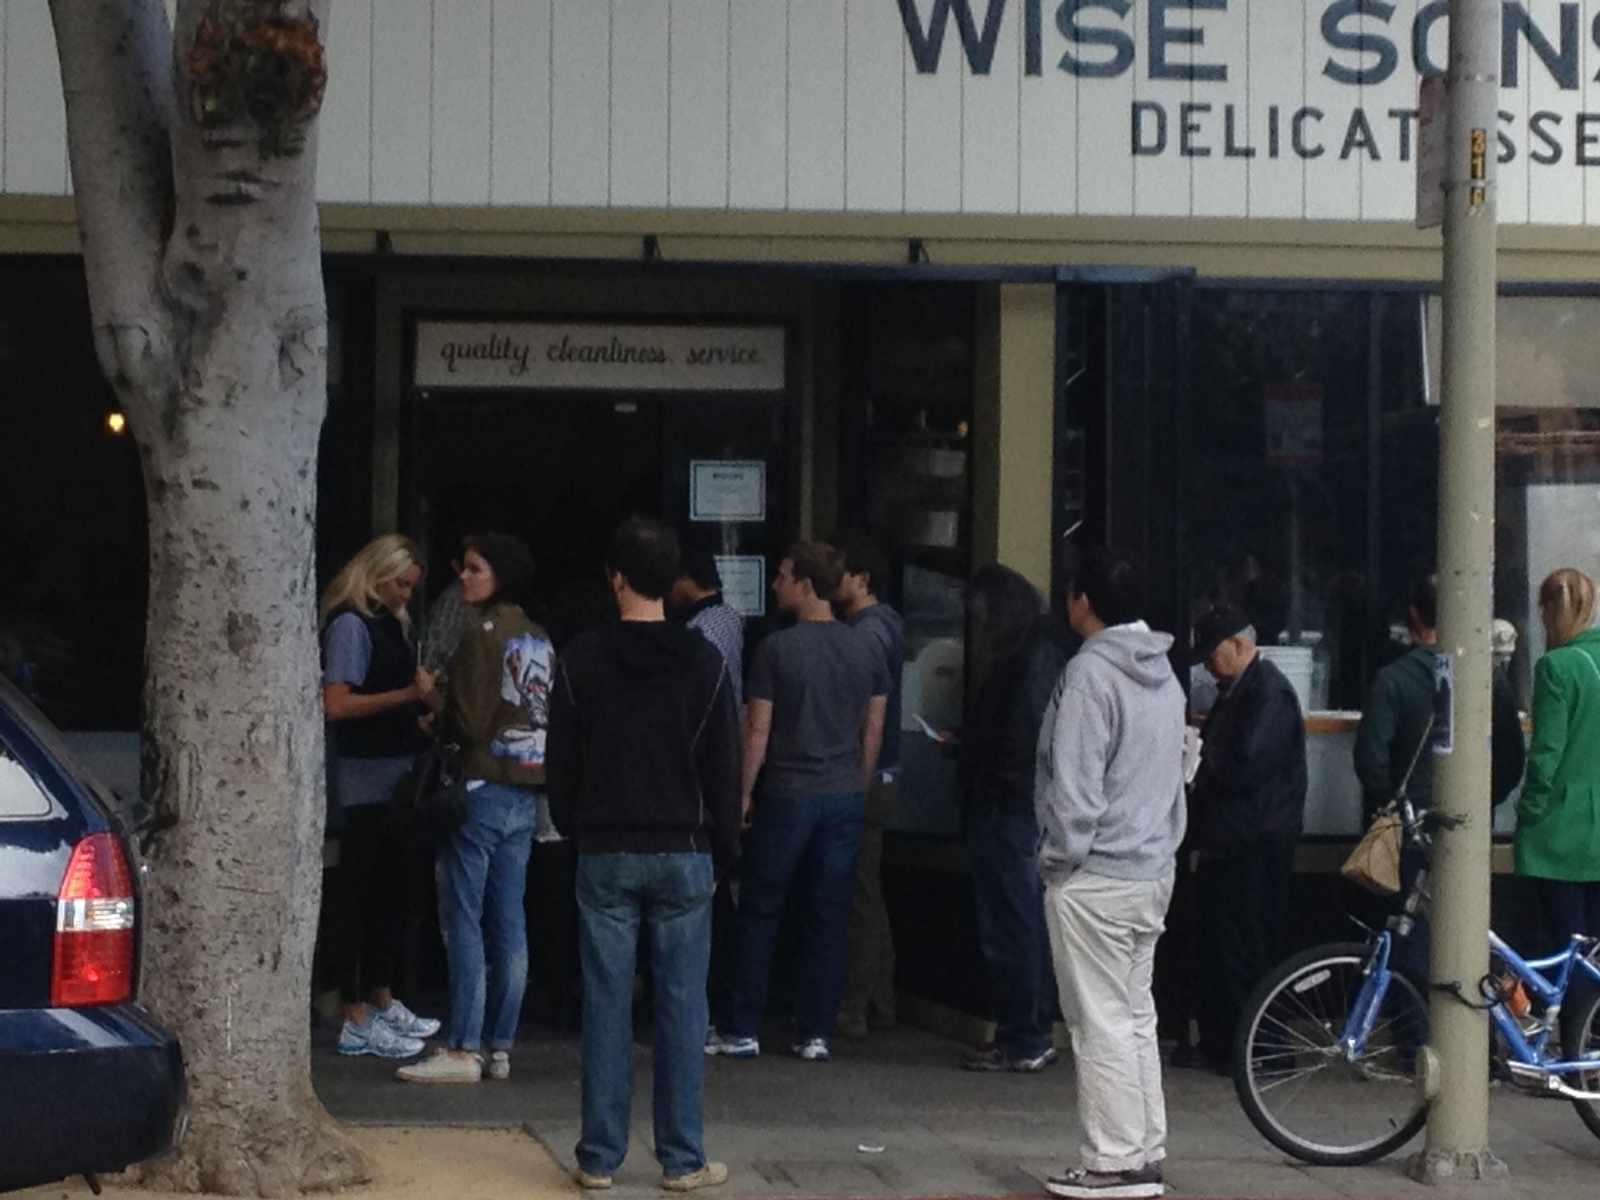 Mark Zuckerberg Moves to the Mission District | Uptown Almanac